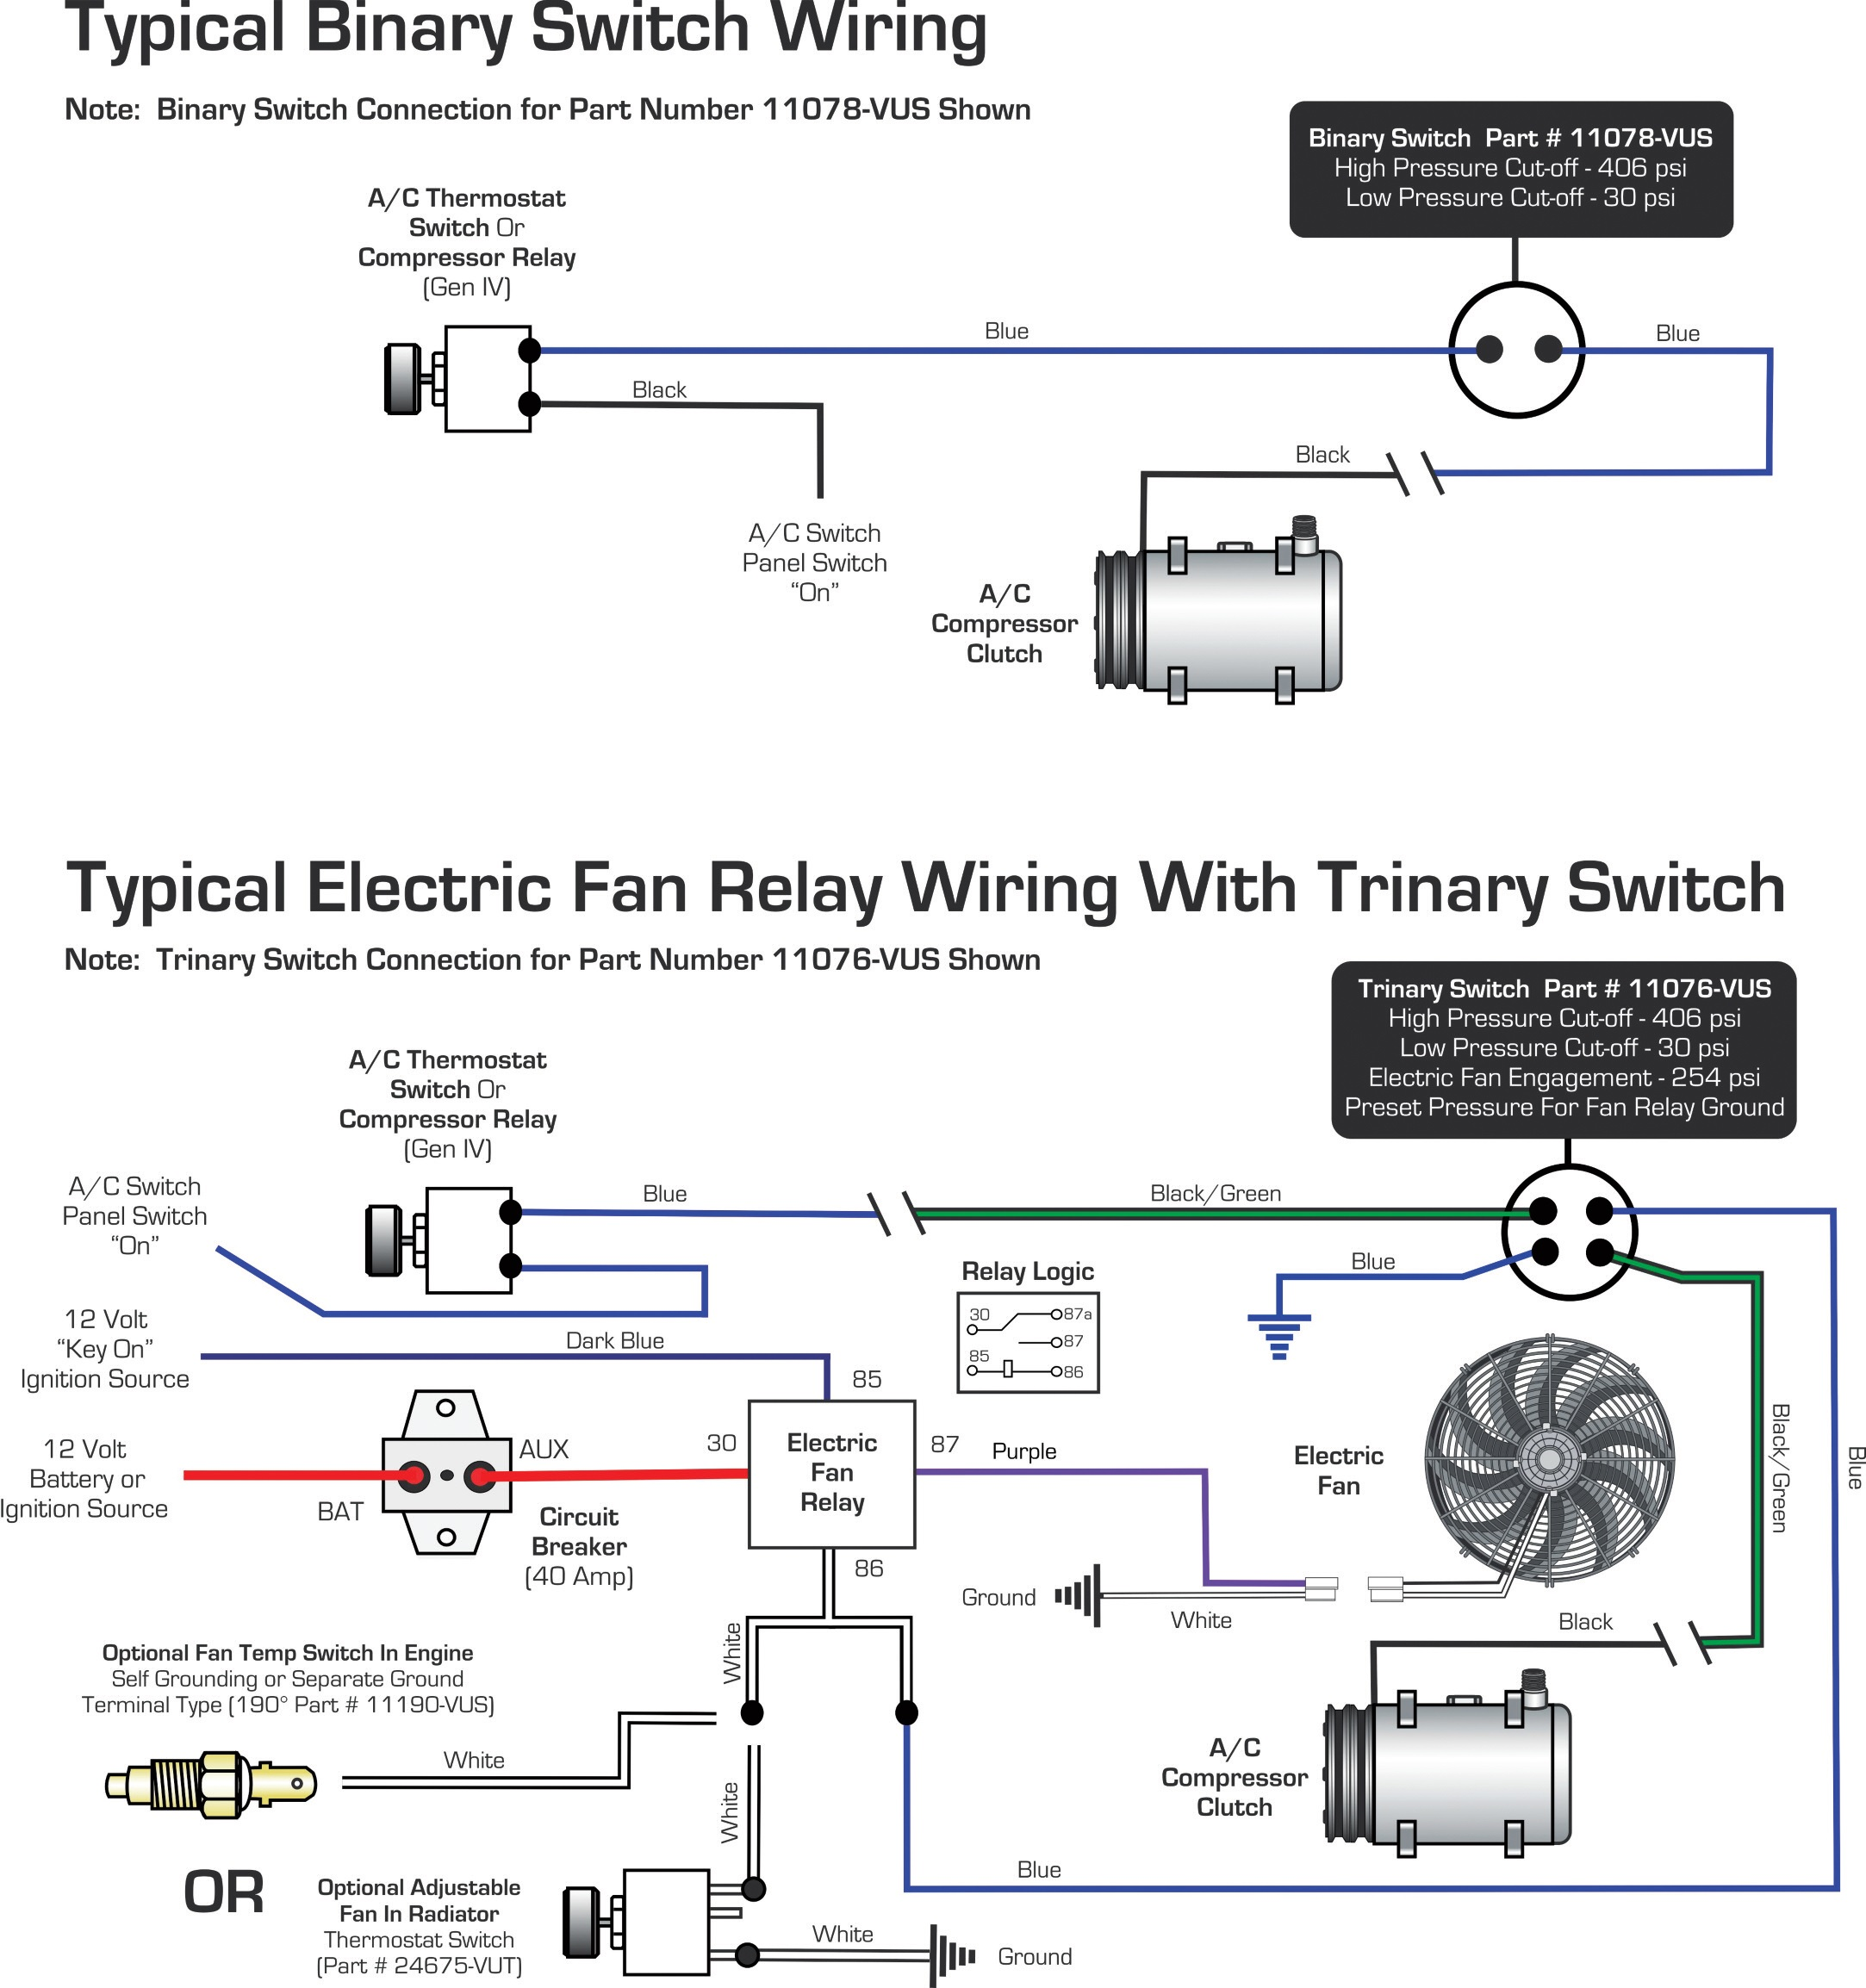 Vintage Air Blog Archive Wiring Diagrams Binary Switch